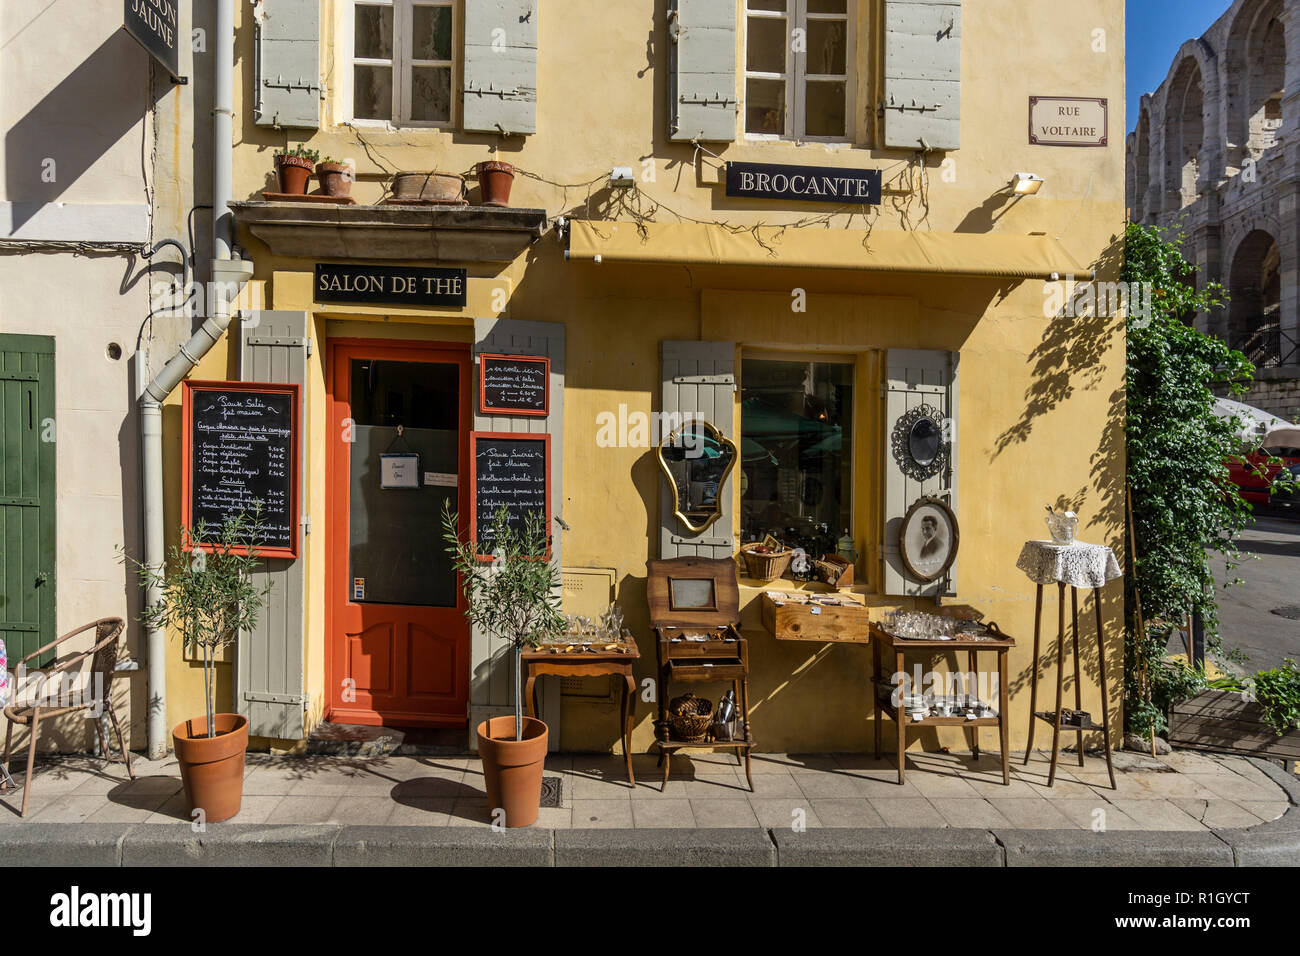 Open The Door Salon De Provence Rue Voltaire Stock Photos And Rue Voltaire Stock Images Alamy